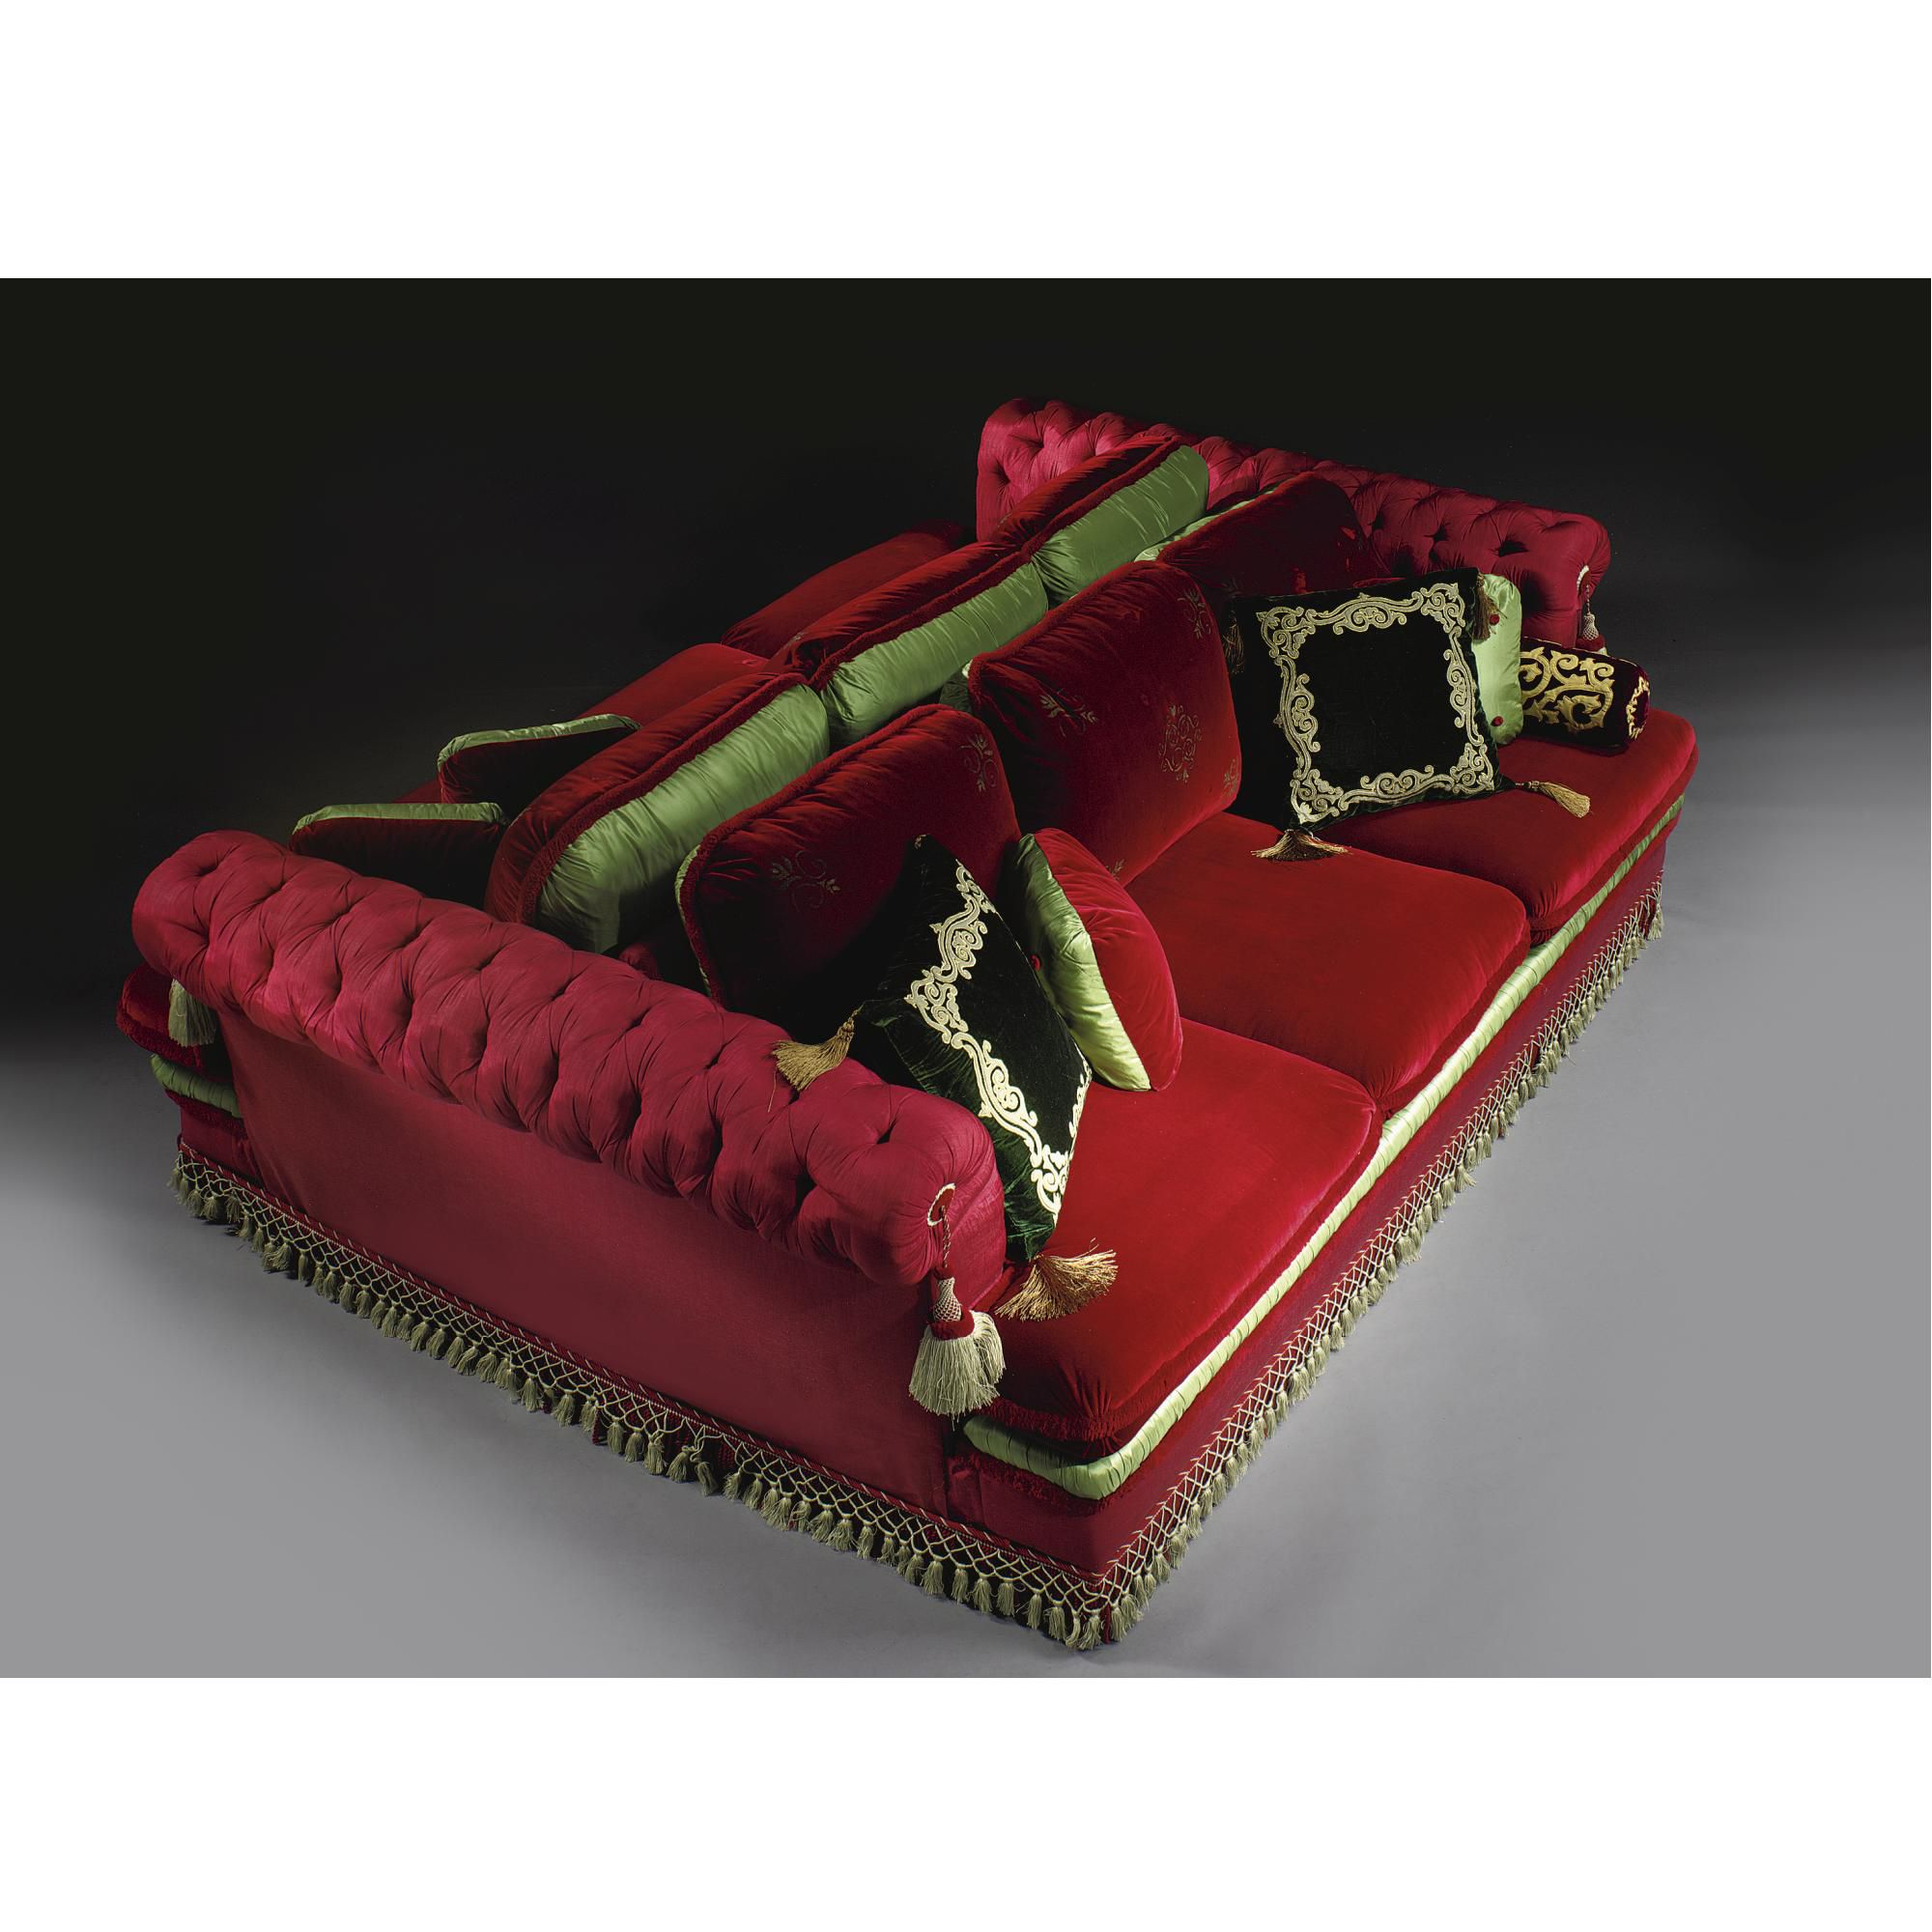 A Napoleon III style red velvet and satin button-tufted sofa designed by Alberto Pinto | Lot | Sotheby's